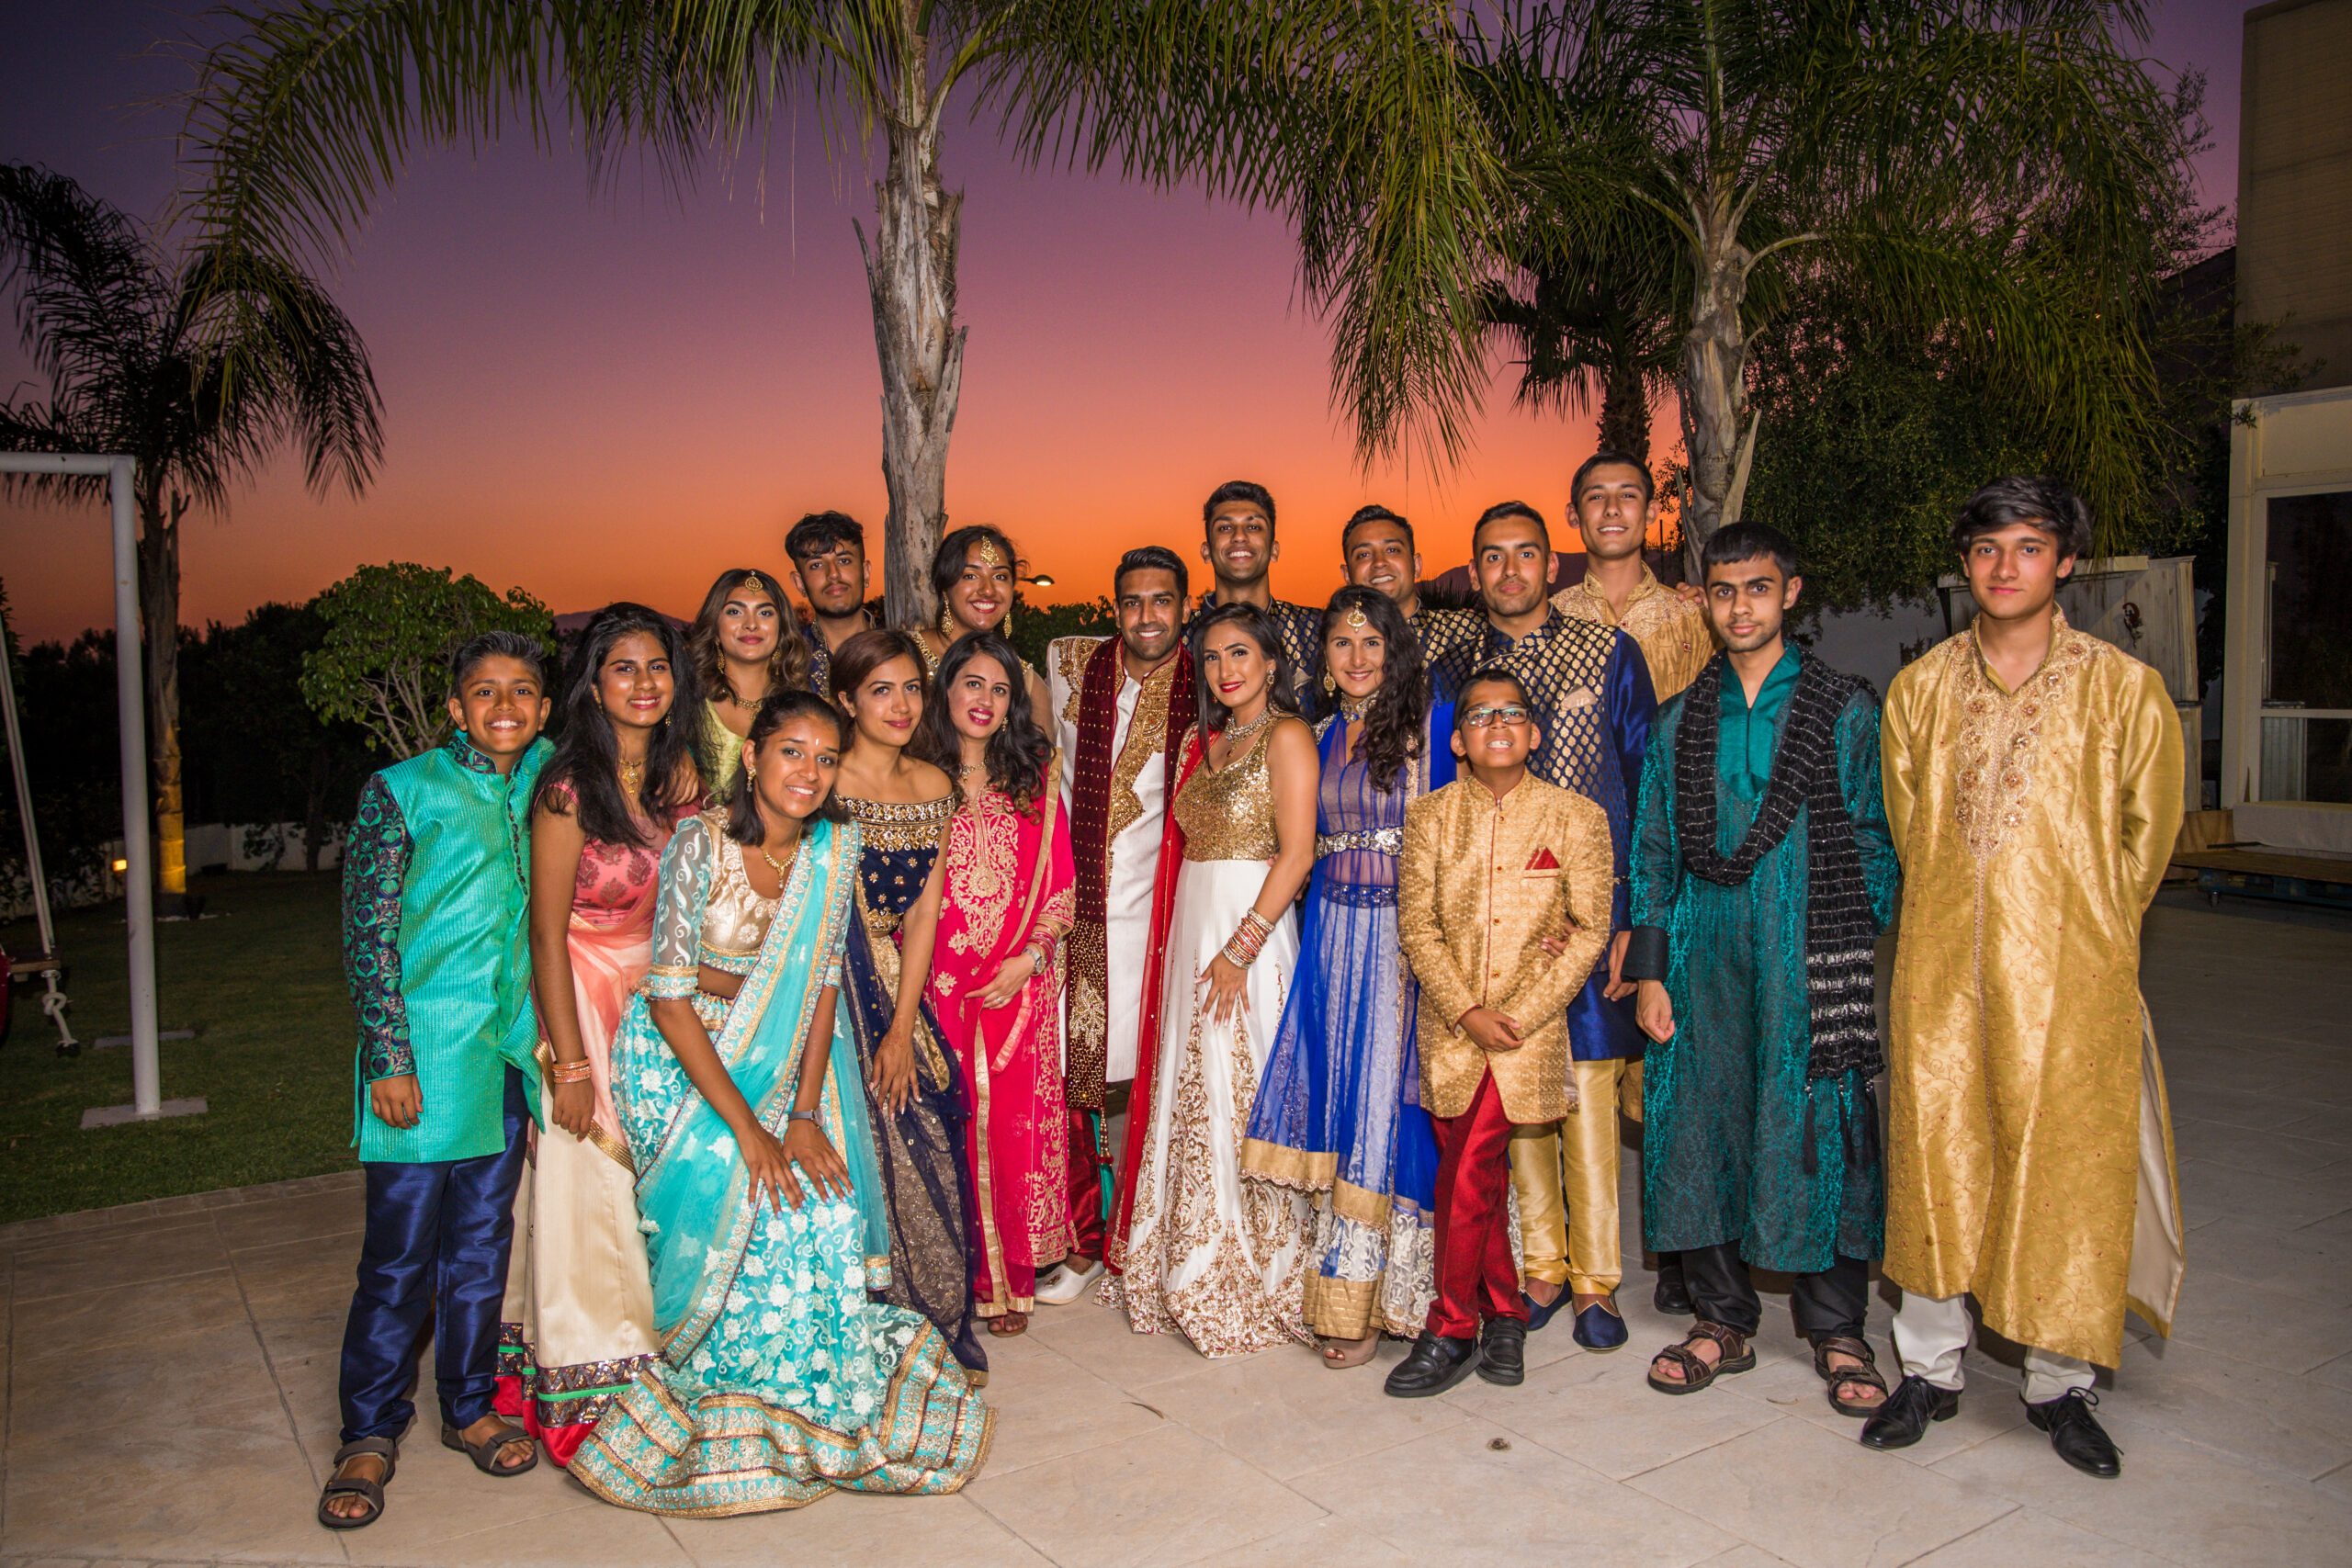 The wedding party at sunset in the glorious Finca gardens - Rebecca Davidson Photography